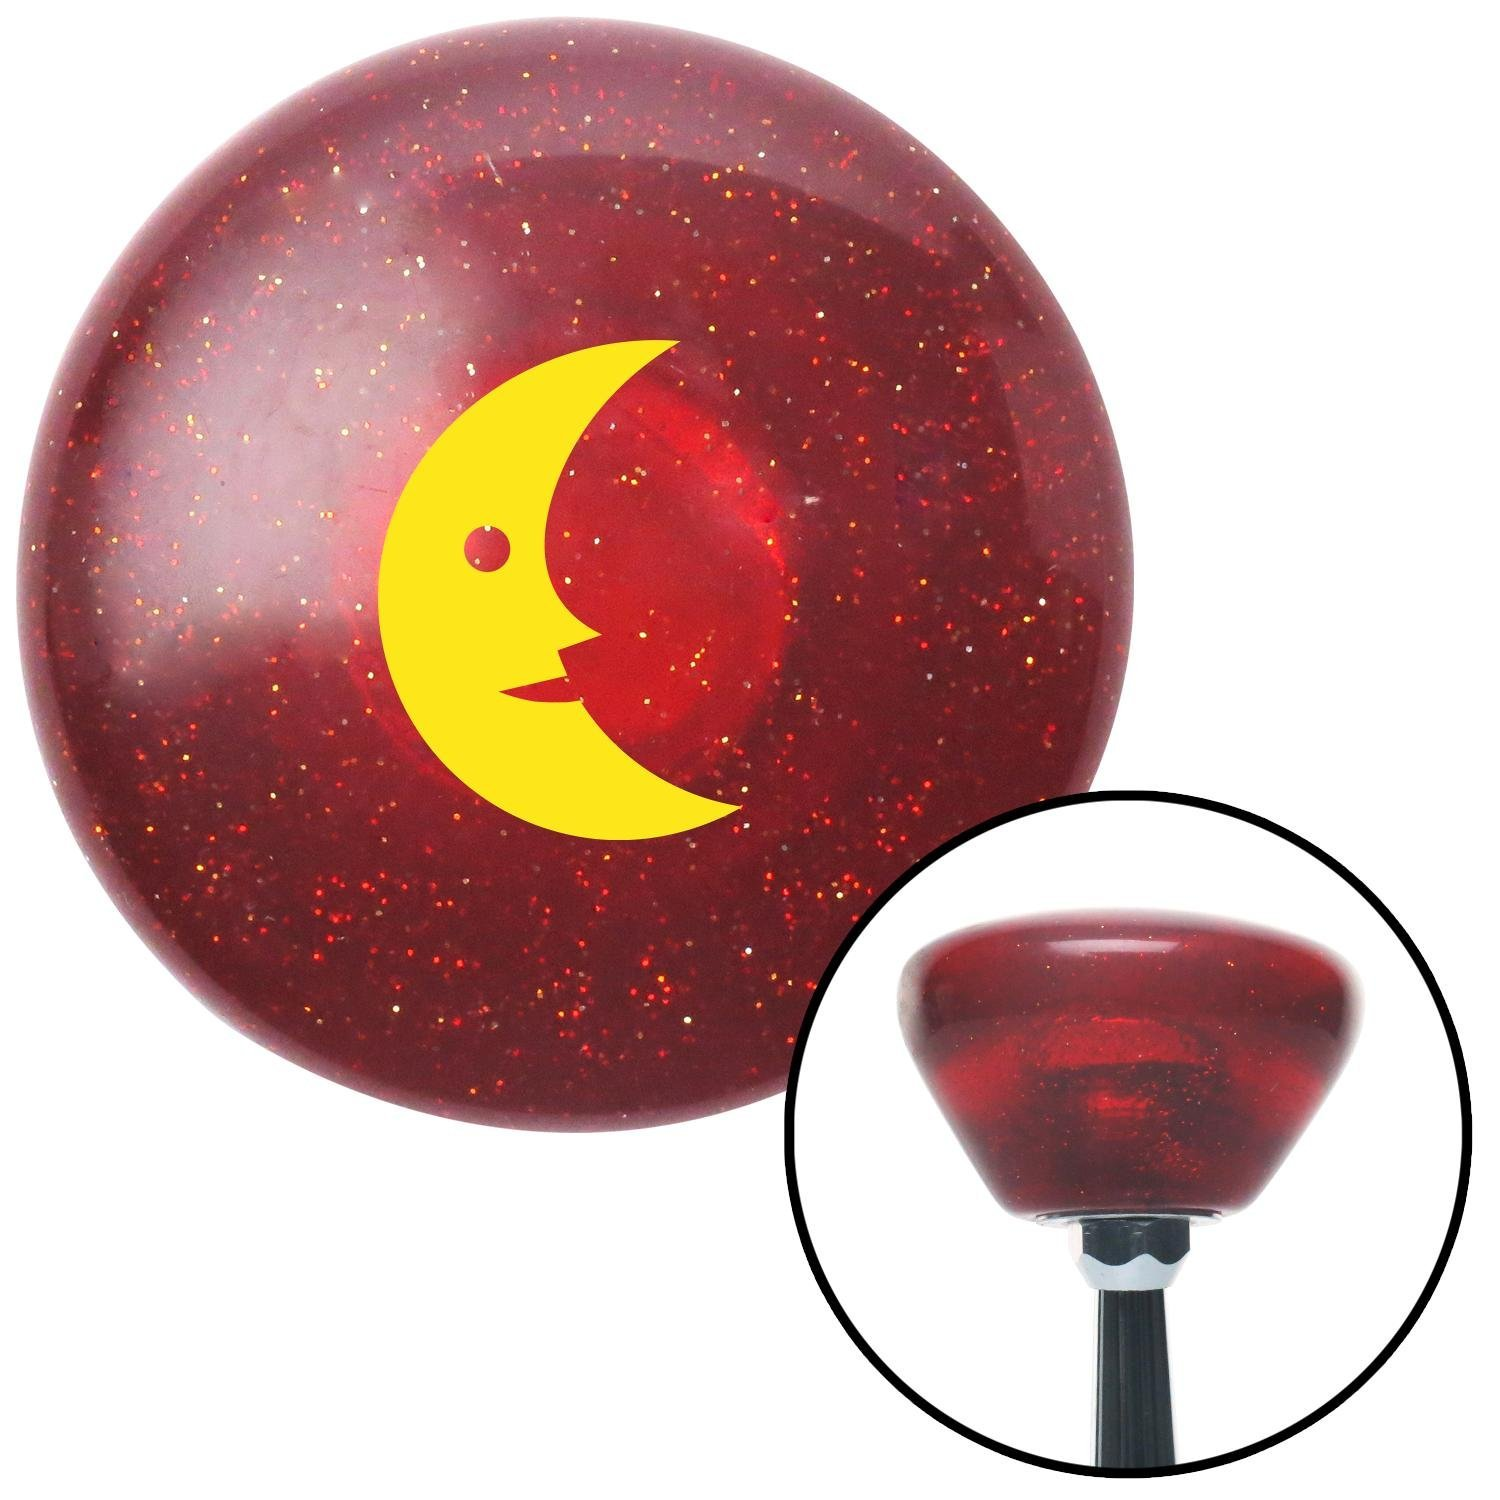 American Shifter 196653 Red Retro Metal Flake Shift Knob with M16 x 1.5 Insert Yellow Crescent Moon Smiling